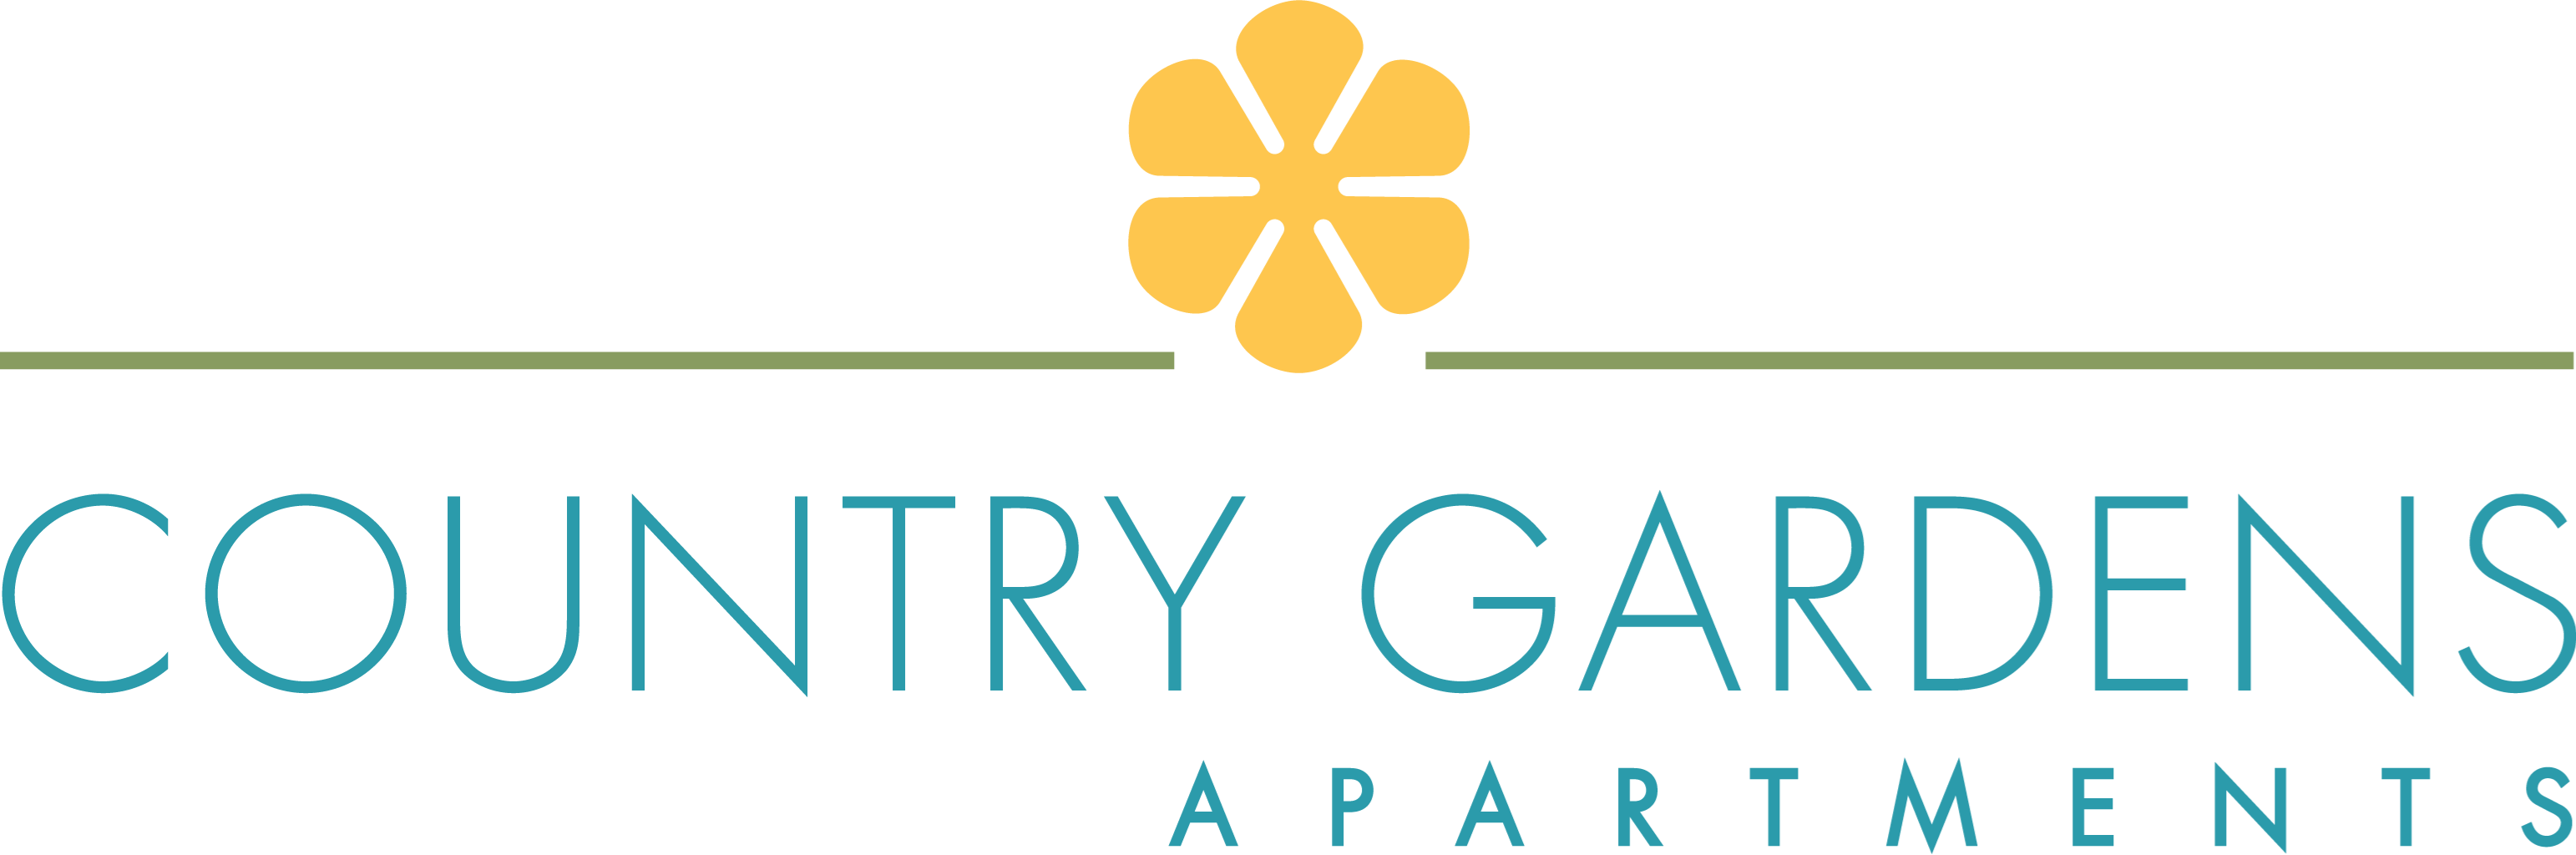 Country Club Apartments for rent in Winter Garden, FL. Make this community your new home or visit other Concord Rents communities at ConcordRents.com. Logo